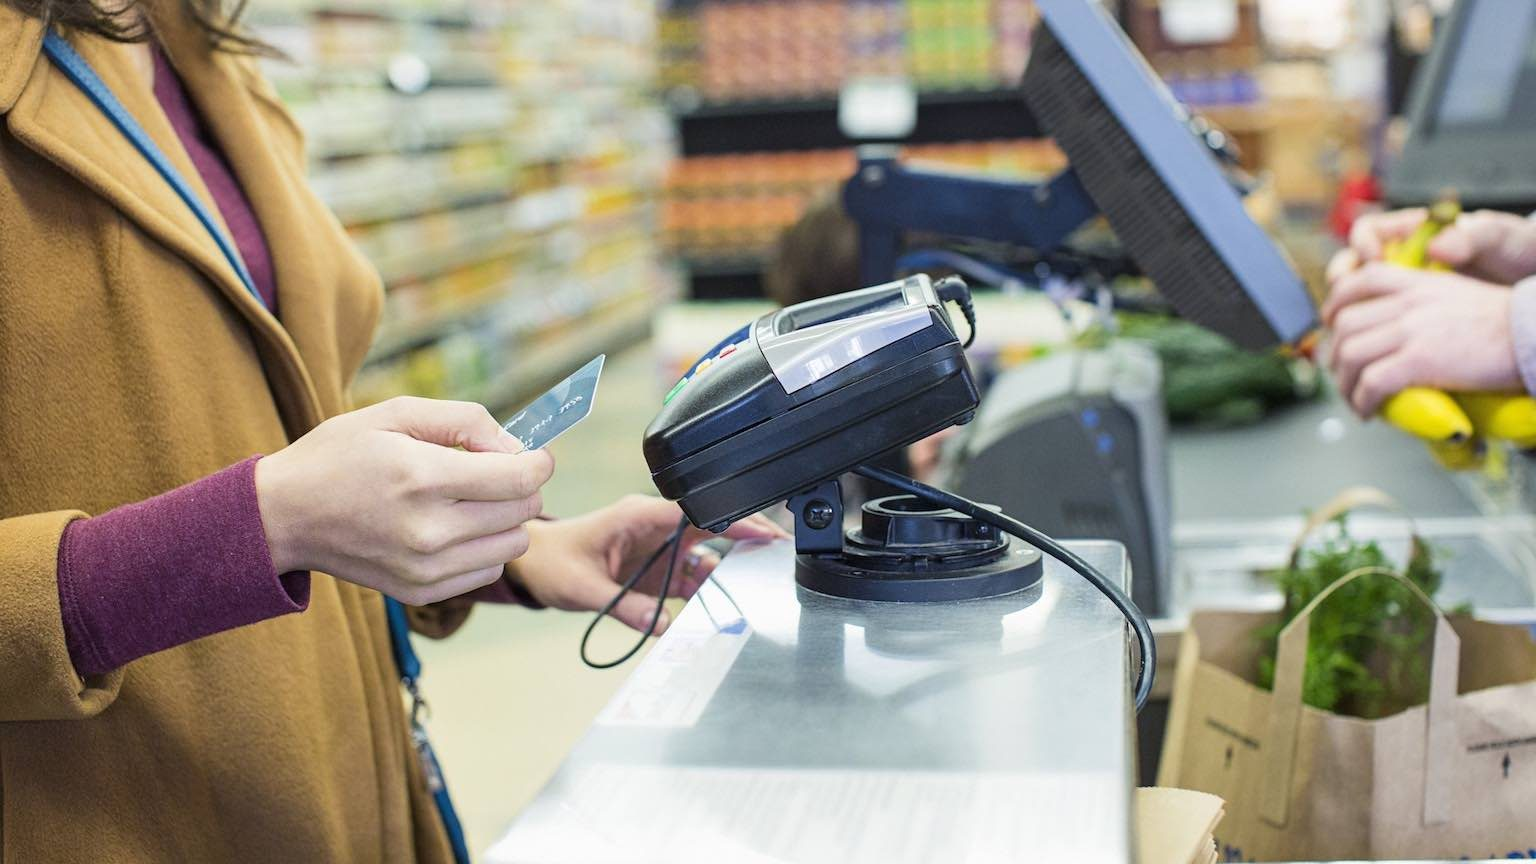 Lady using credit card to pay at supermarket EFTPOS terminal.